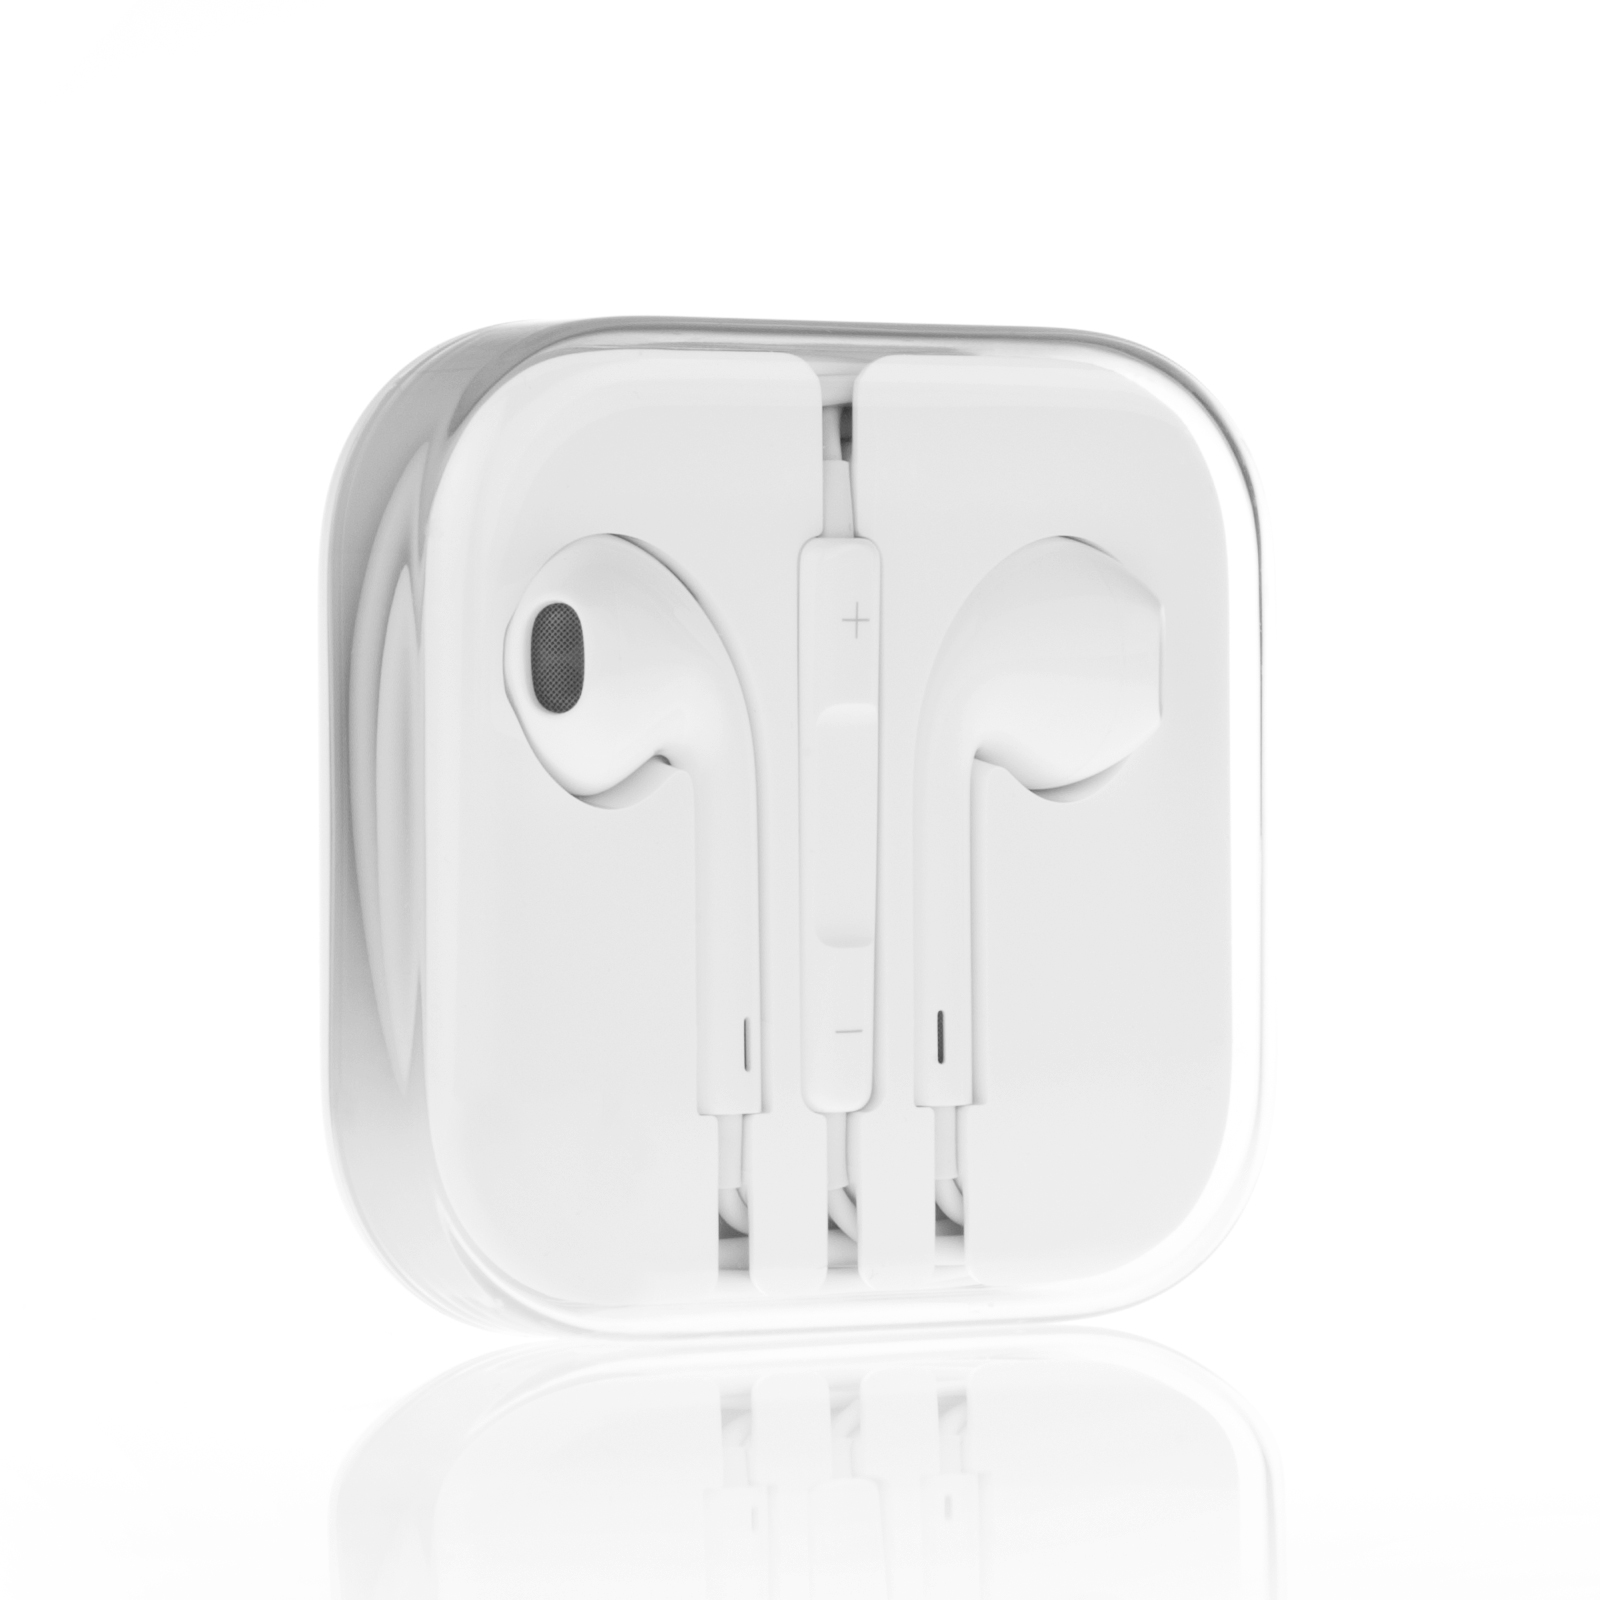 Official Apple EarPods, Adapter and USB Cable Accessory Pack for iPhone 6 Plus and 6s Plus /6s, 6 Plus /6s Plus And iPhone 5,5C & 5S